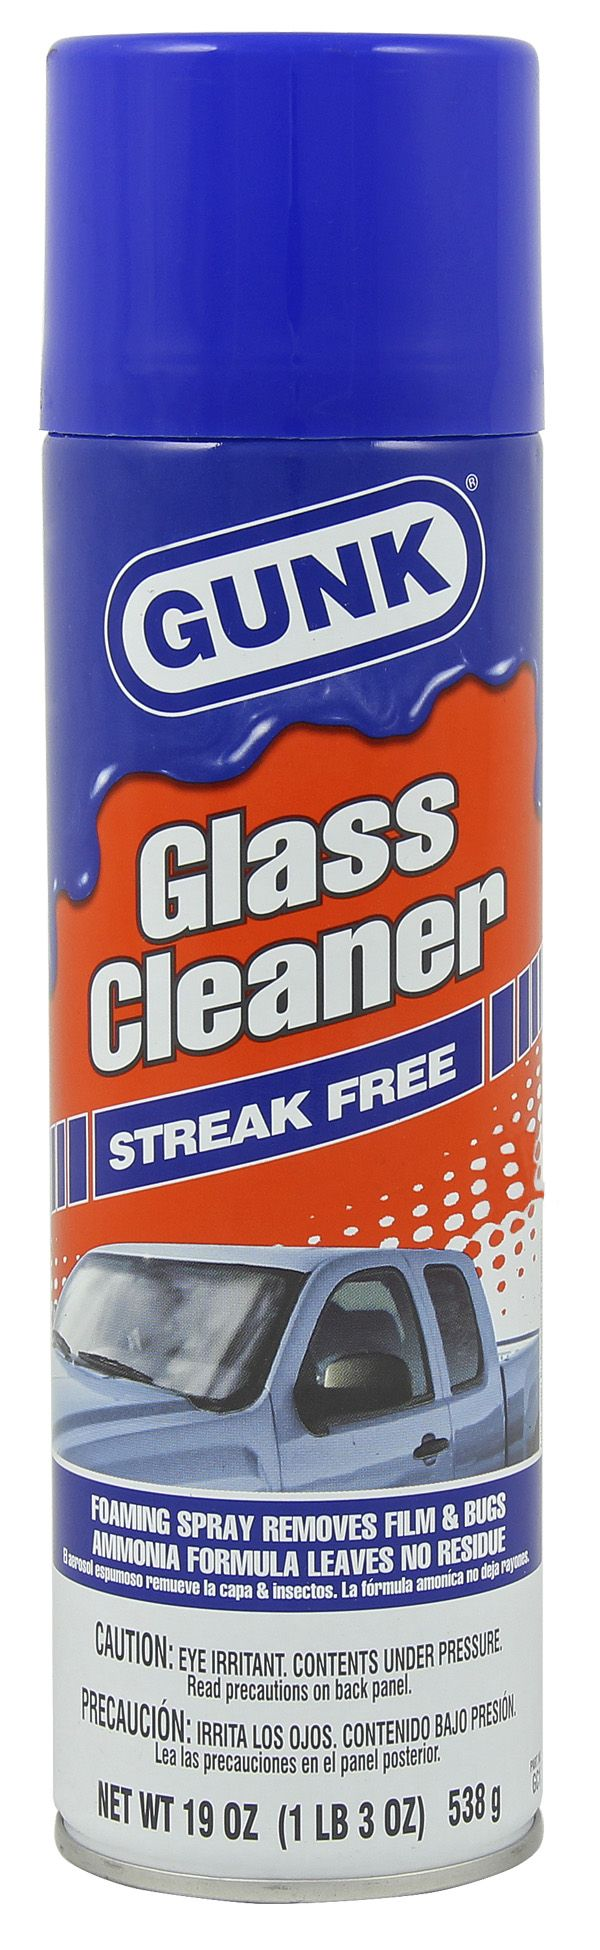 Glass Cleaner Streak Free Image